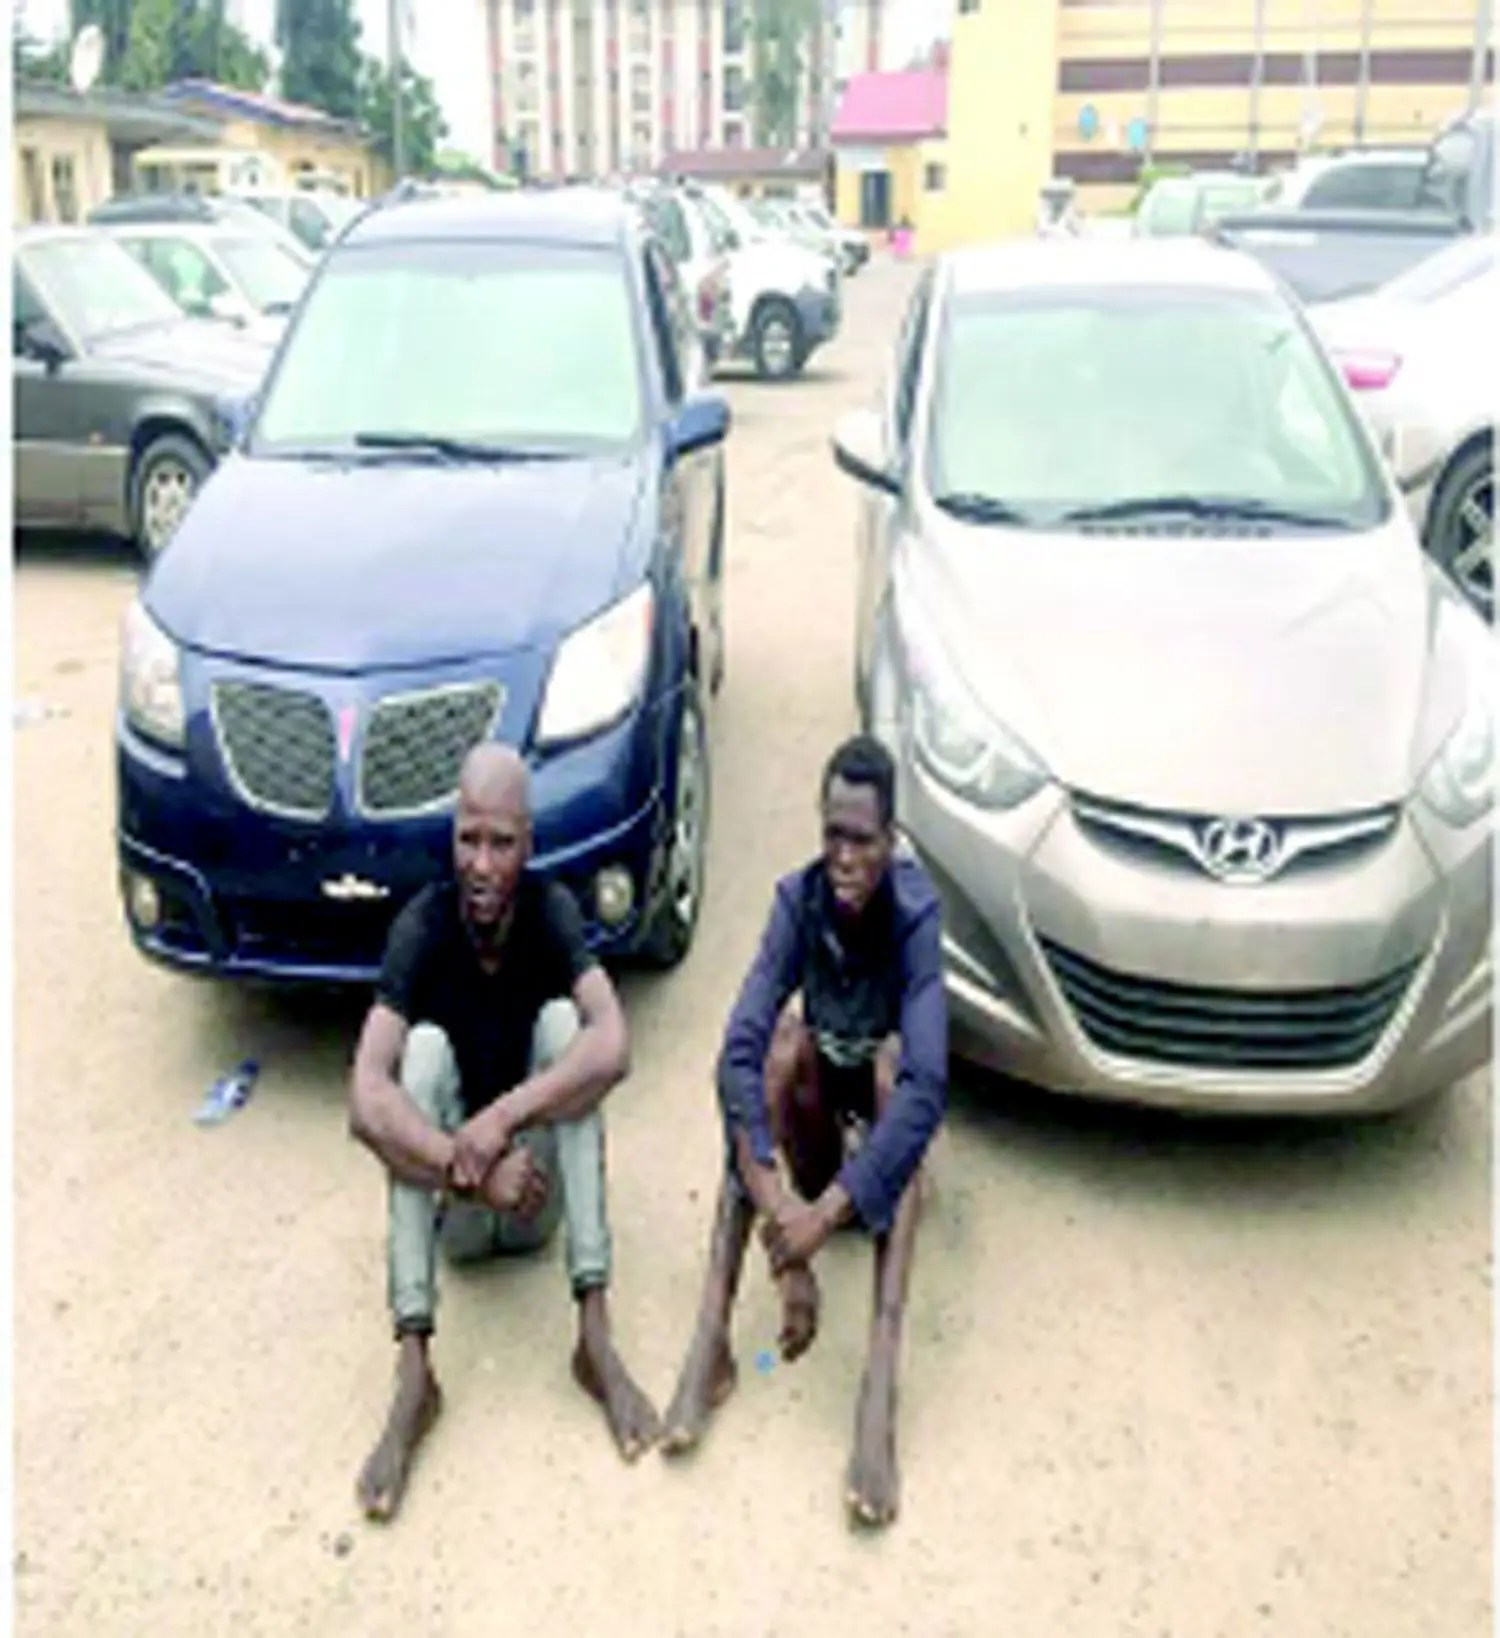 We use sticks to cut burglary proof during operation — Robbery suspects - Vanguard